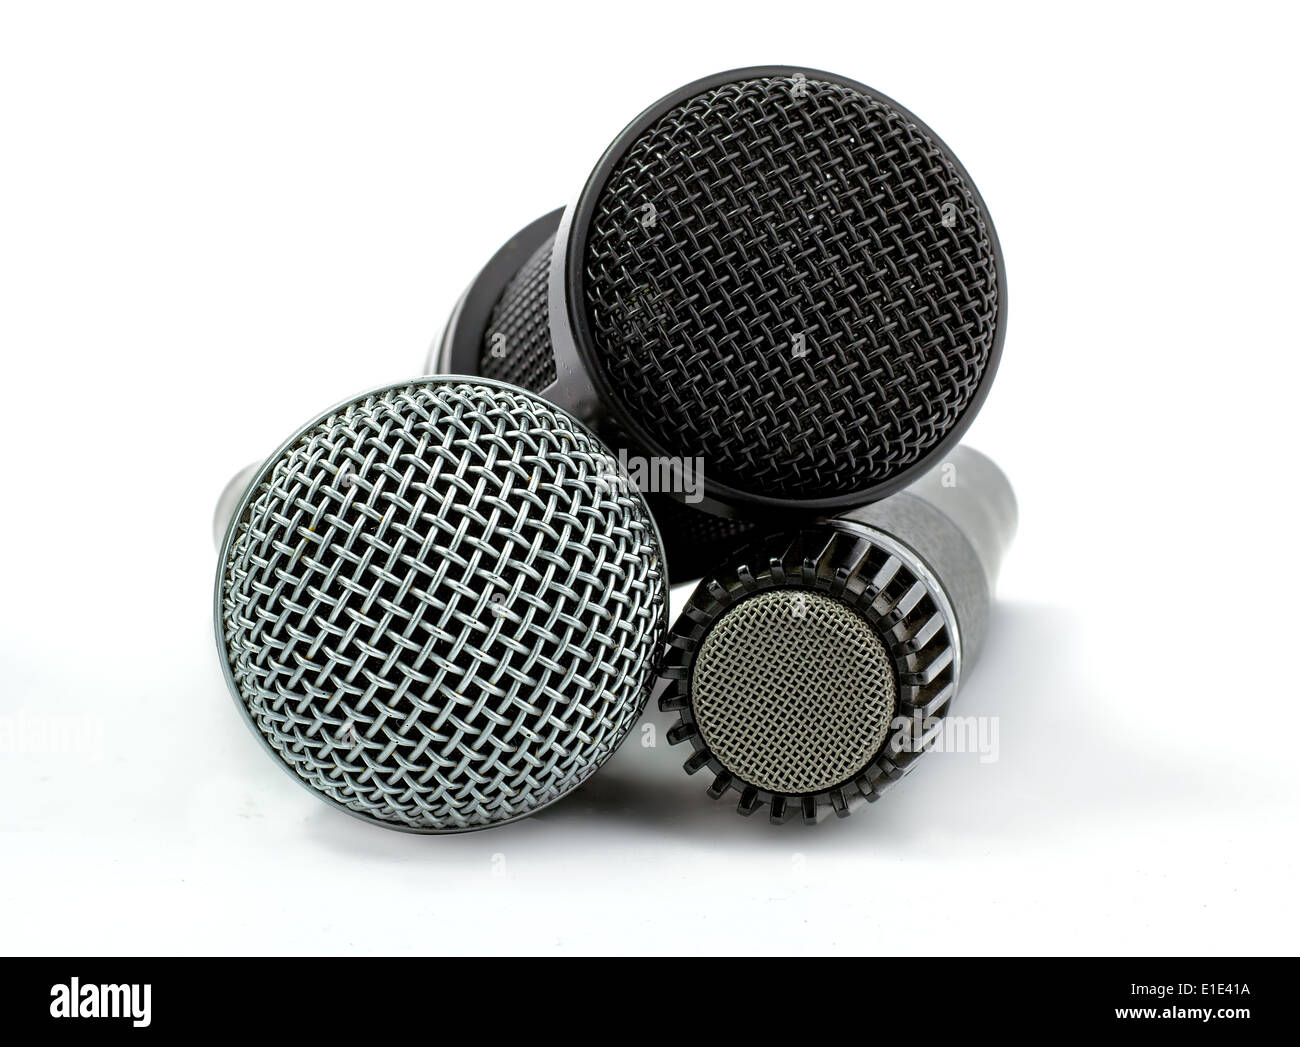 one condenser microphone and two dynamic microphones, isolated on white background - Stock Image